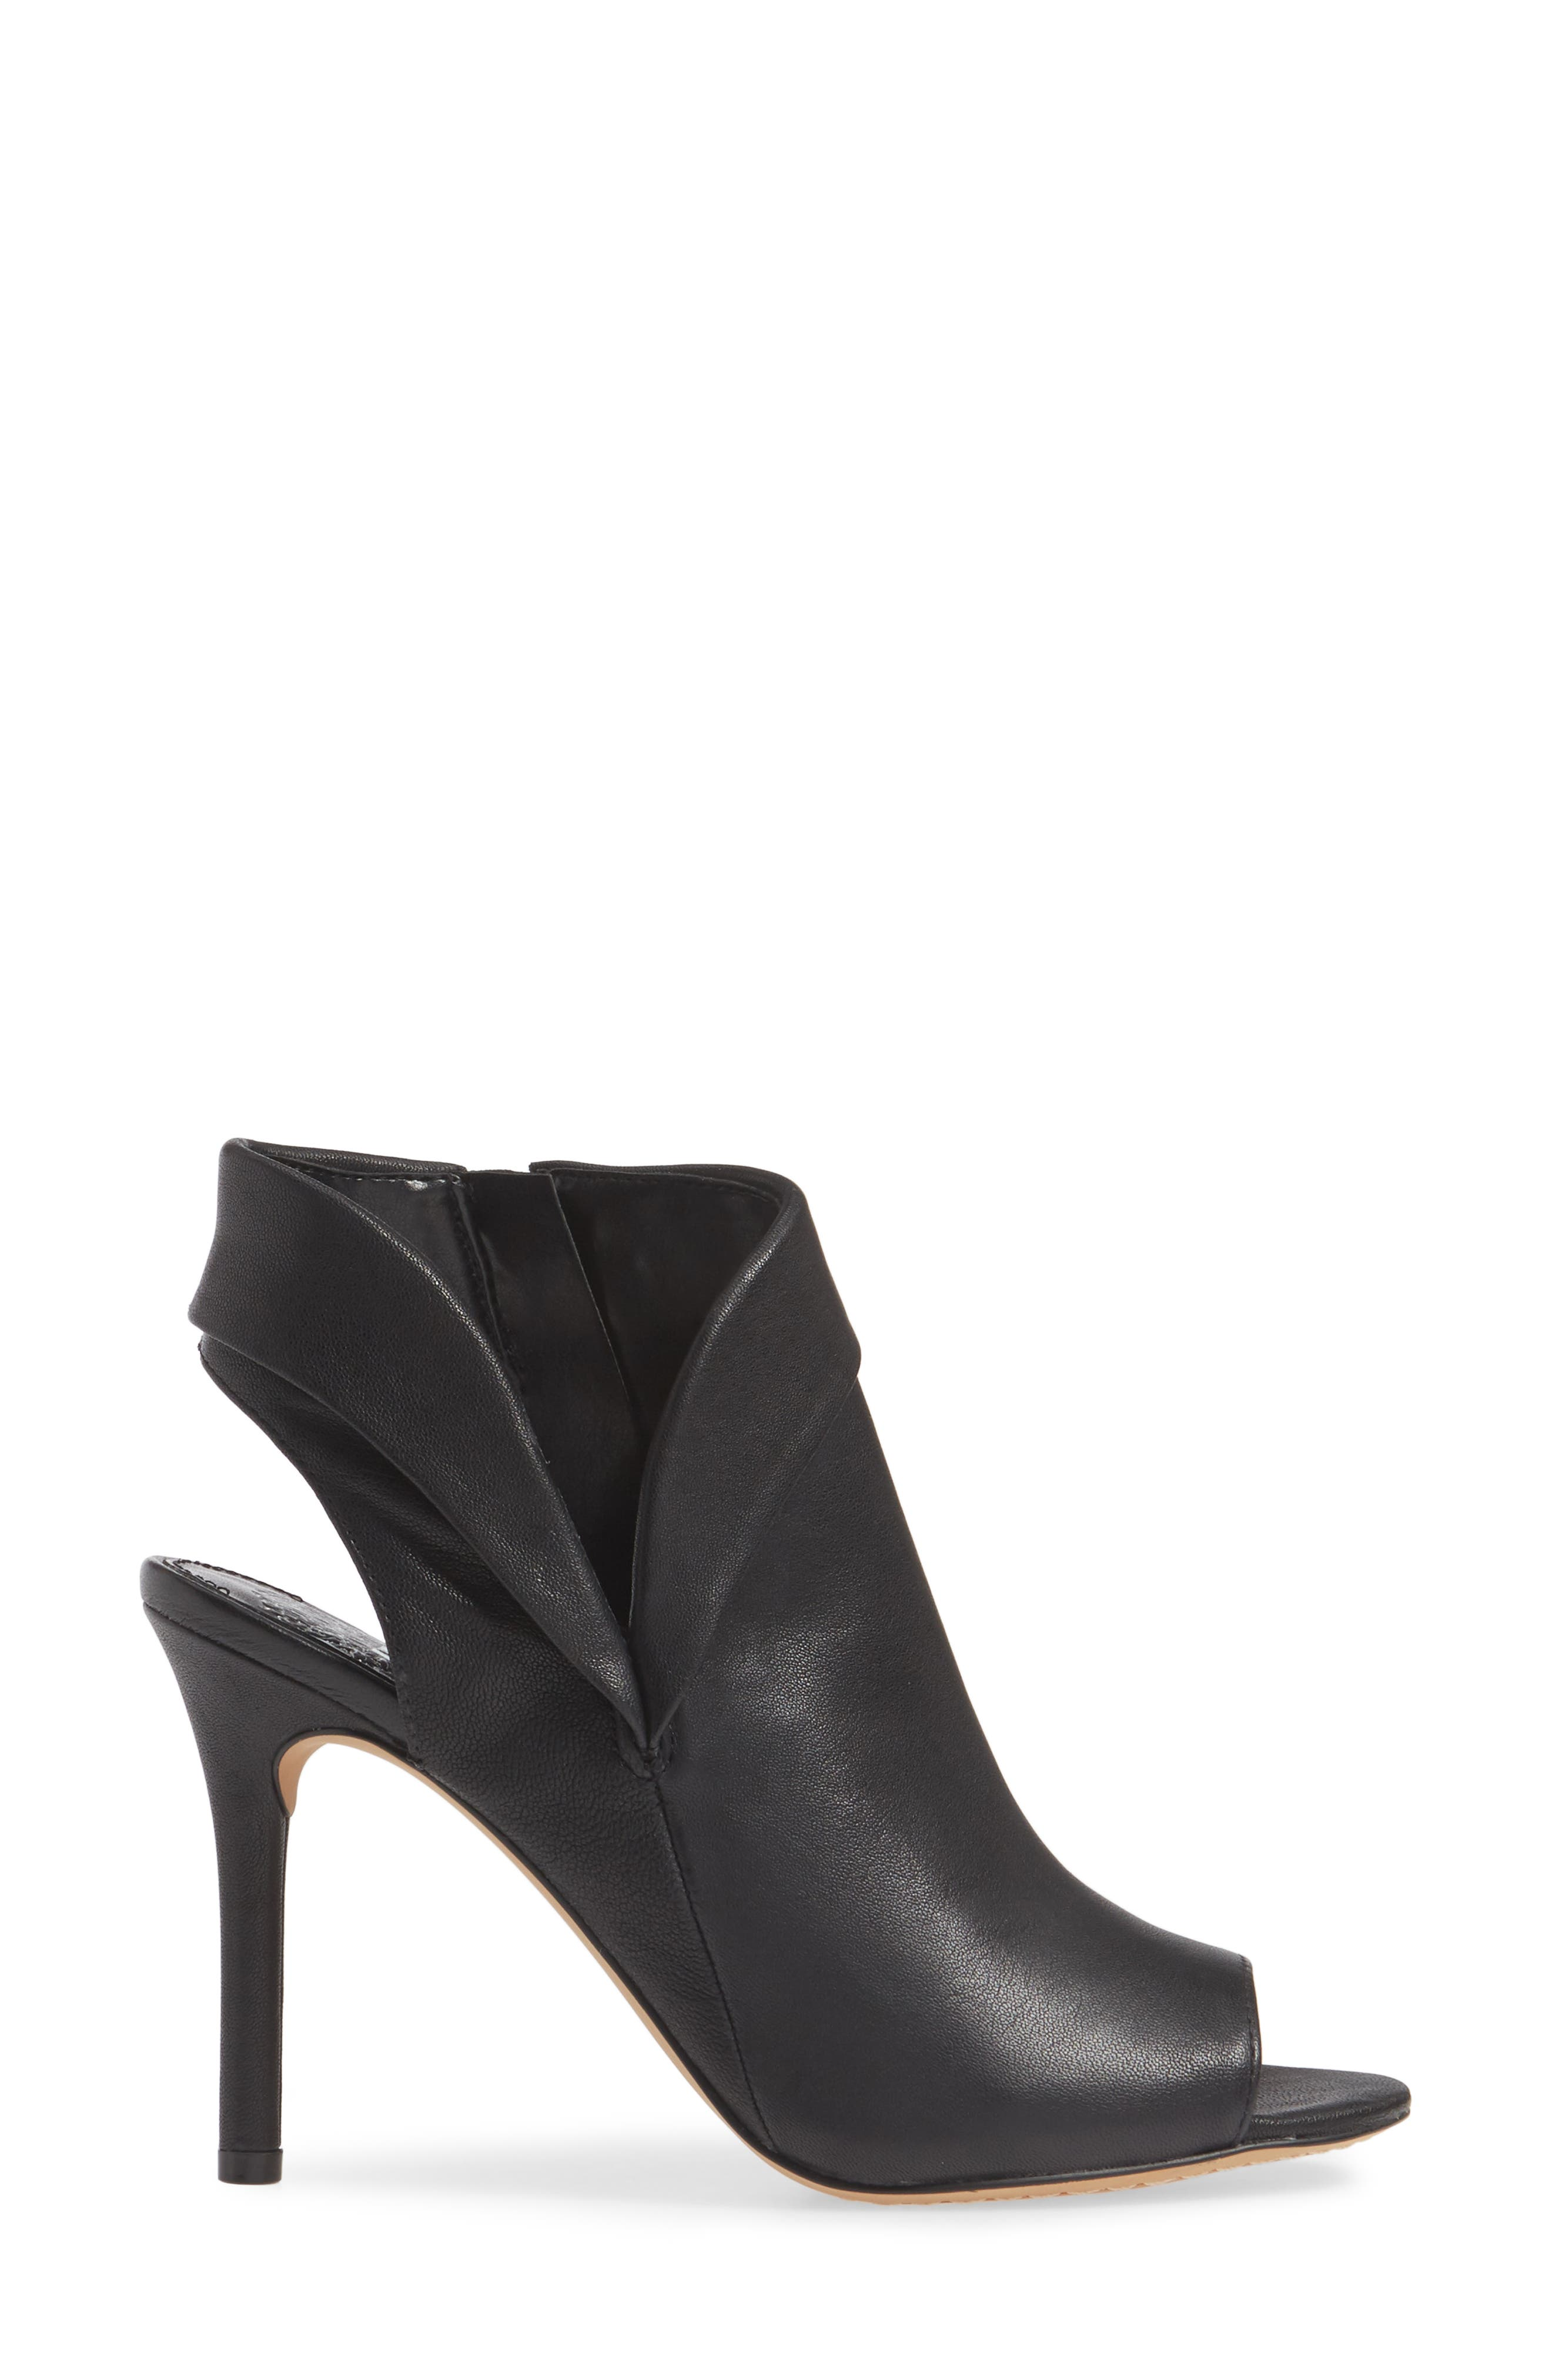 VINCE CAMUTO, Cholia Asymmetrical Sandal Bootie, Alternate thumbnail 3, color, BLACK LEATHER